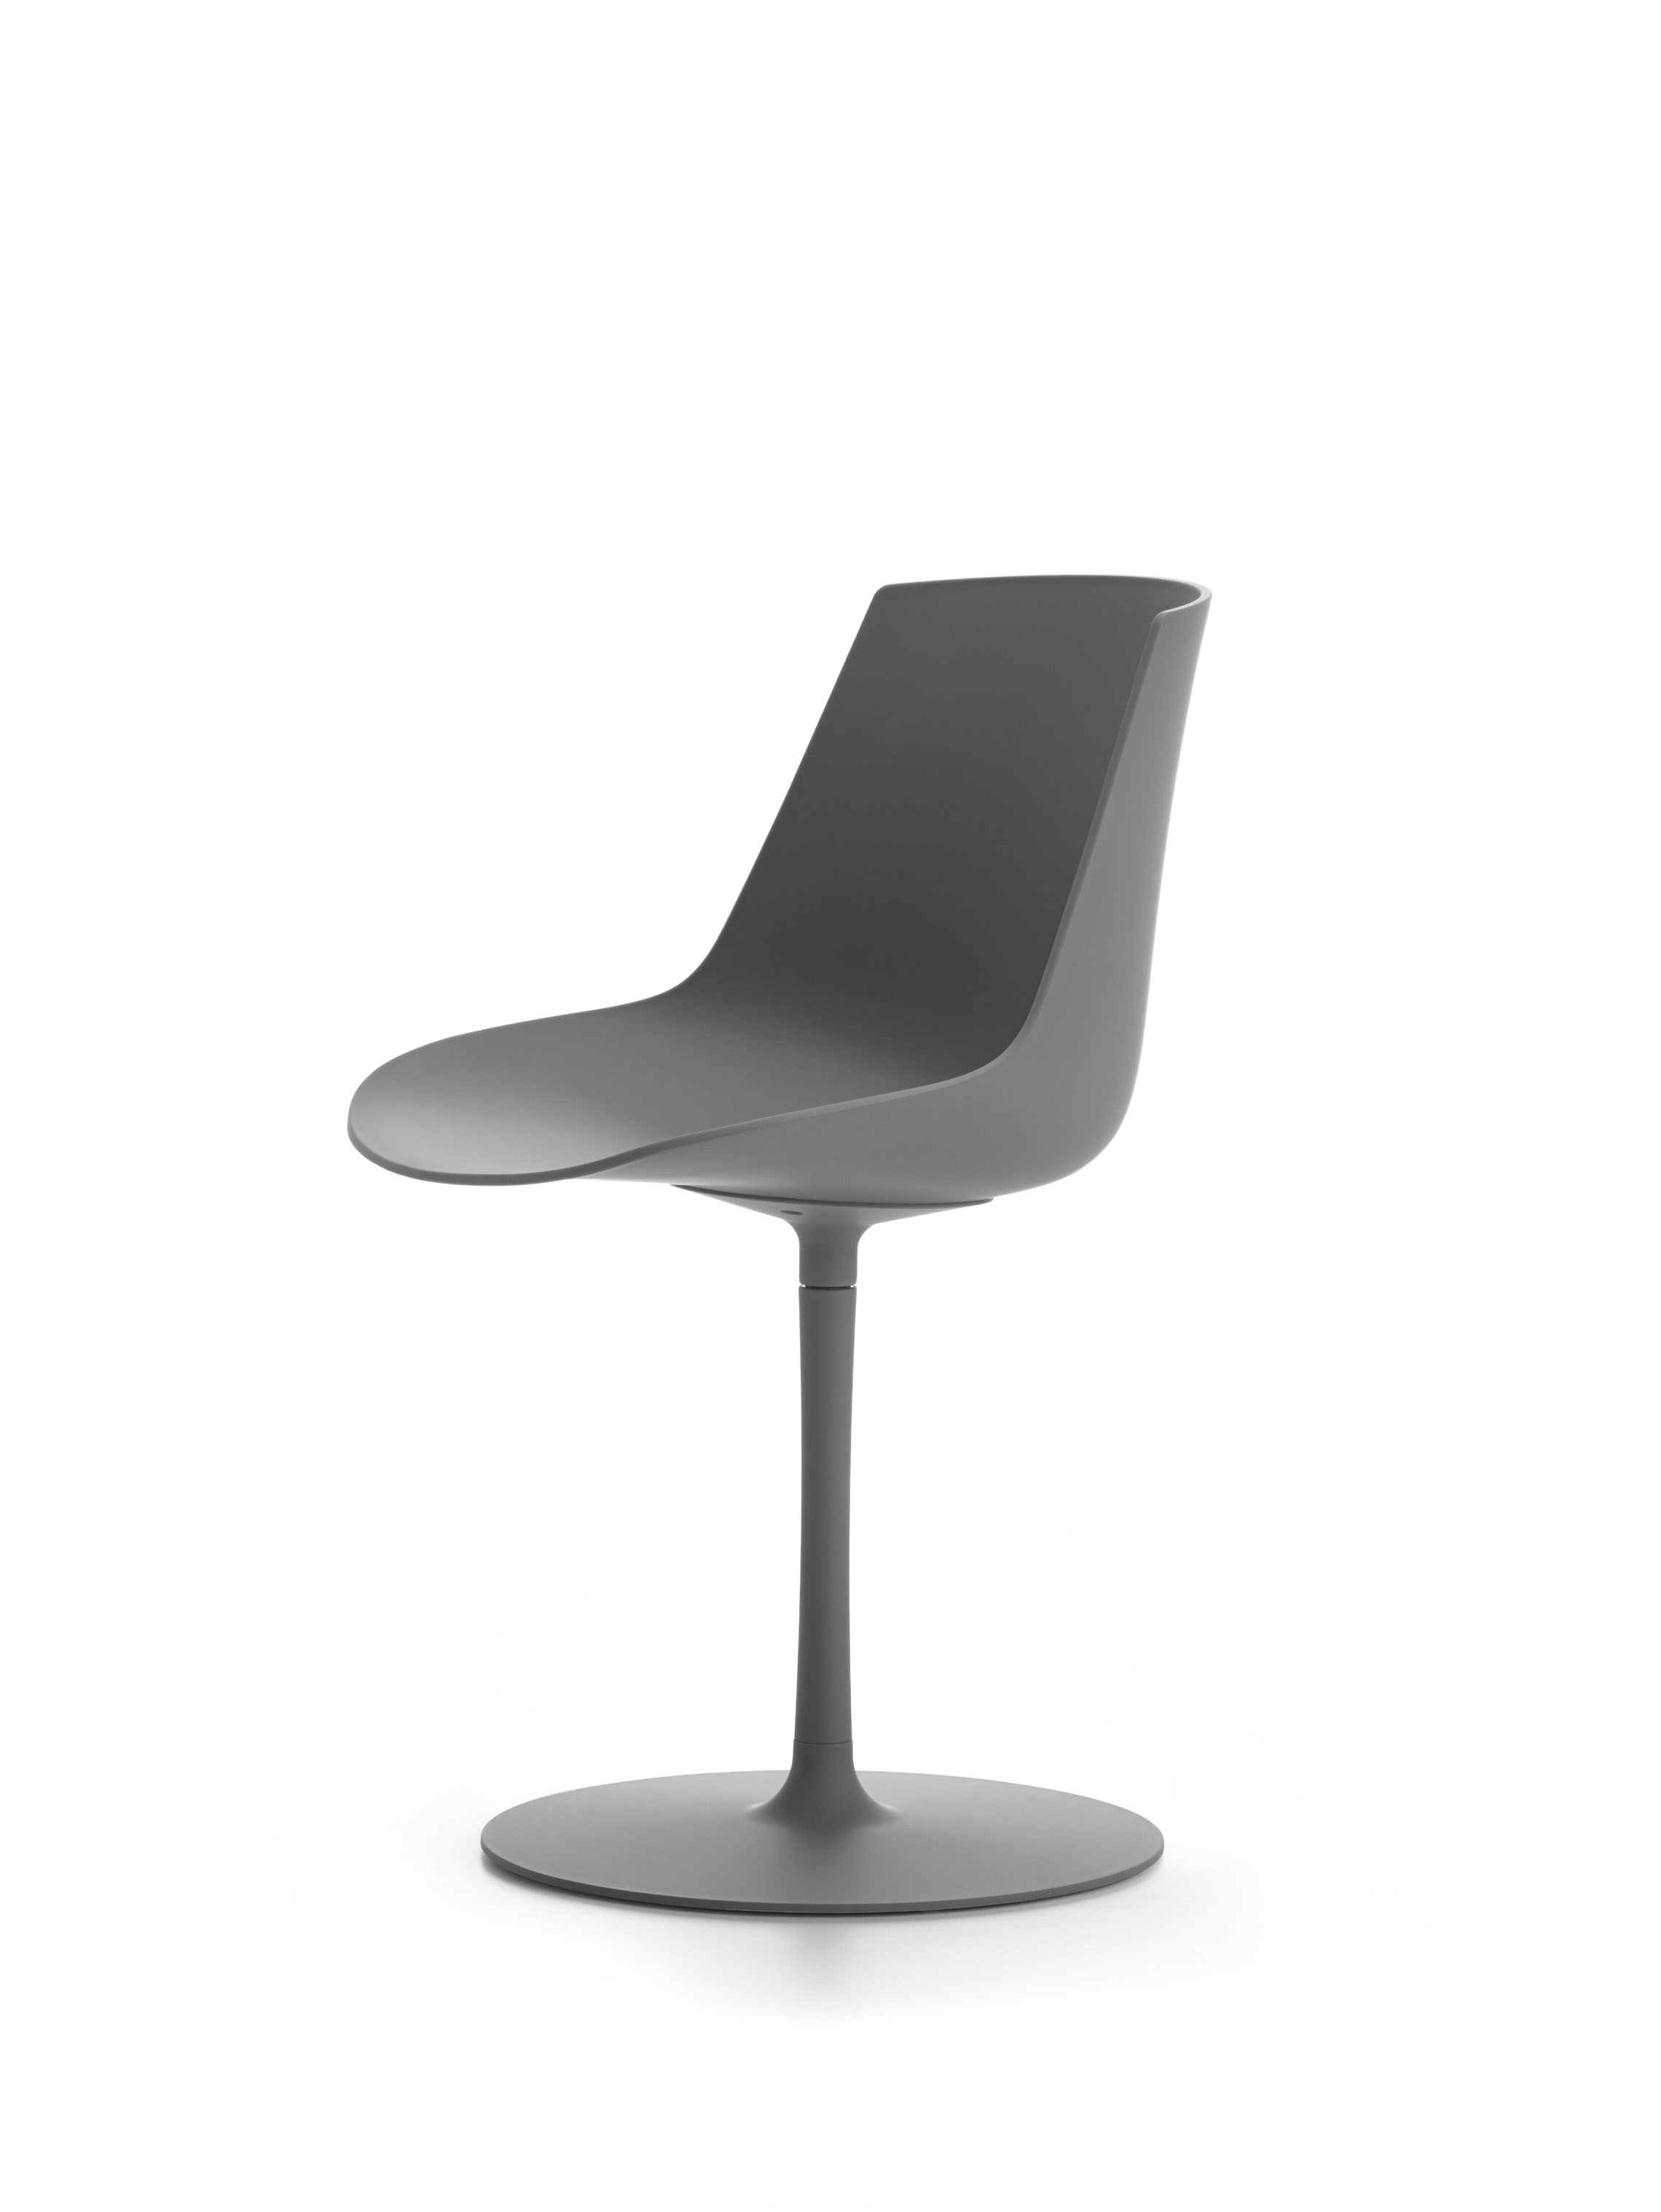 Flow Chair Chairs With A Modern Design For Home And Office Mdf Italia